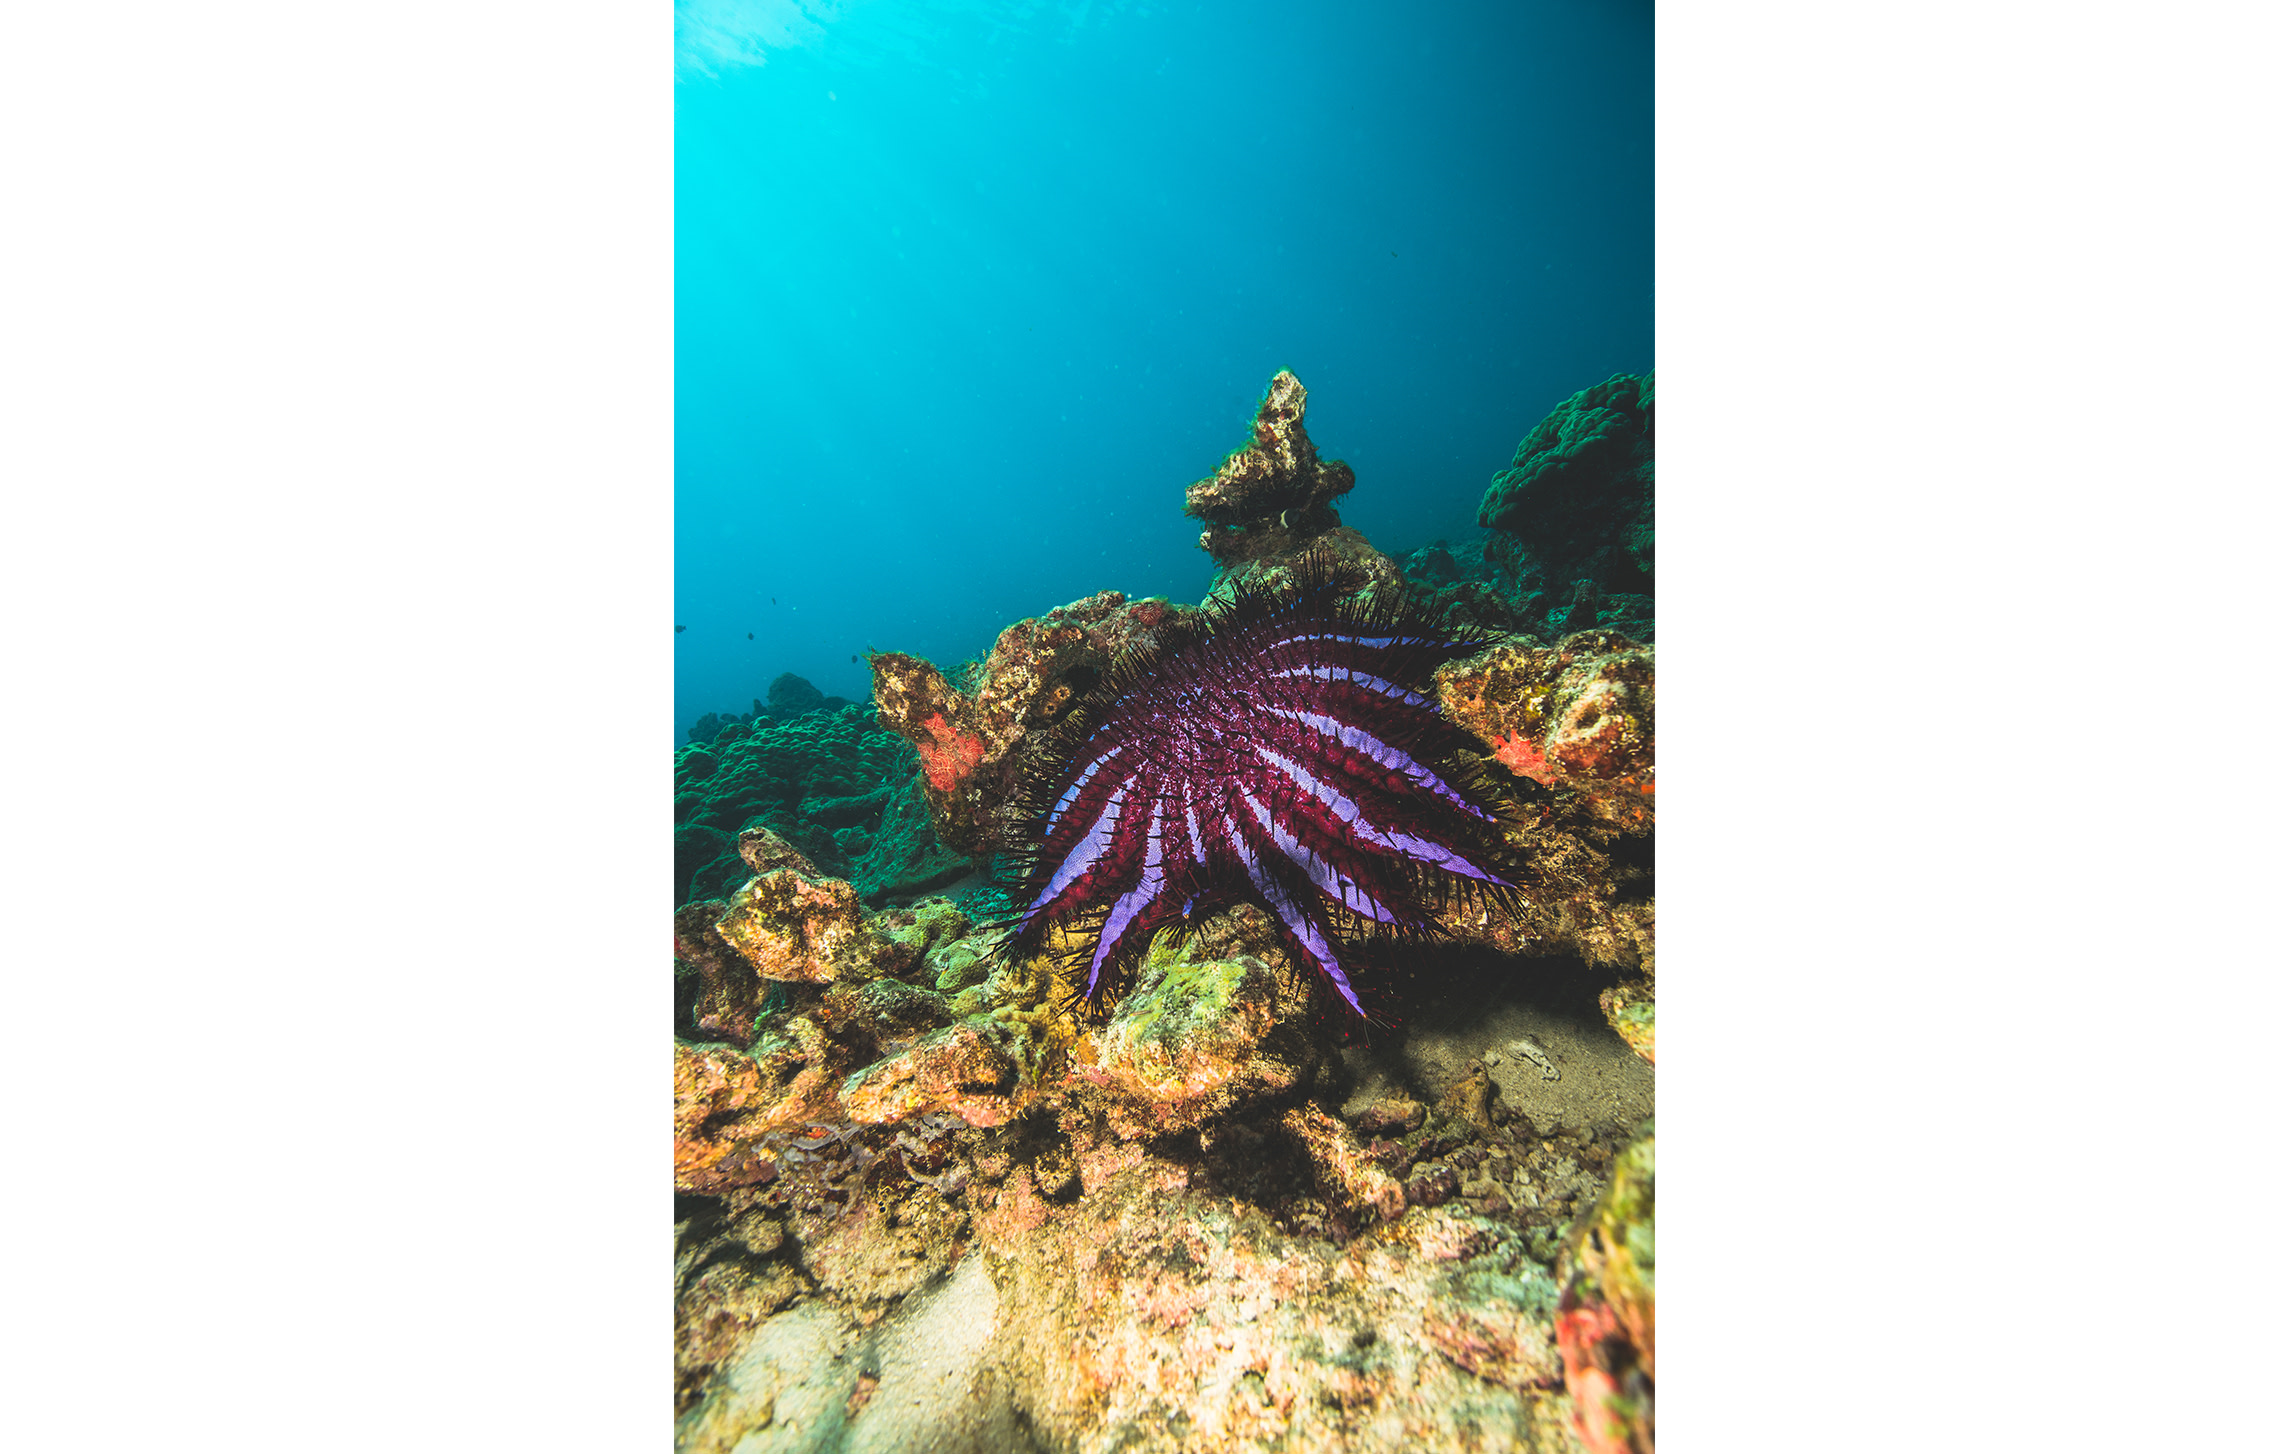 Vibrant and attractive, crown-of-thorn starfish balance and control the coral ecosystem when they exist in single digit numbers. When they multiply in a sudden bloom, these venomous predators are capable of decimating an entire reef in a short time.